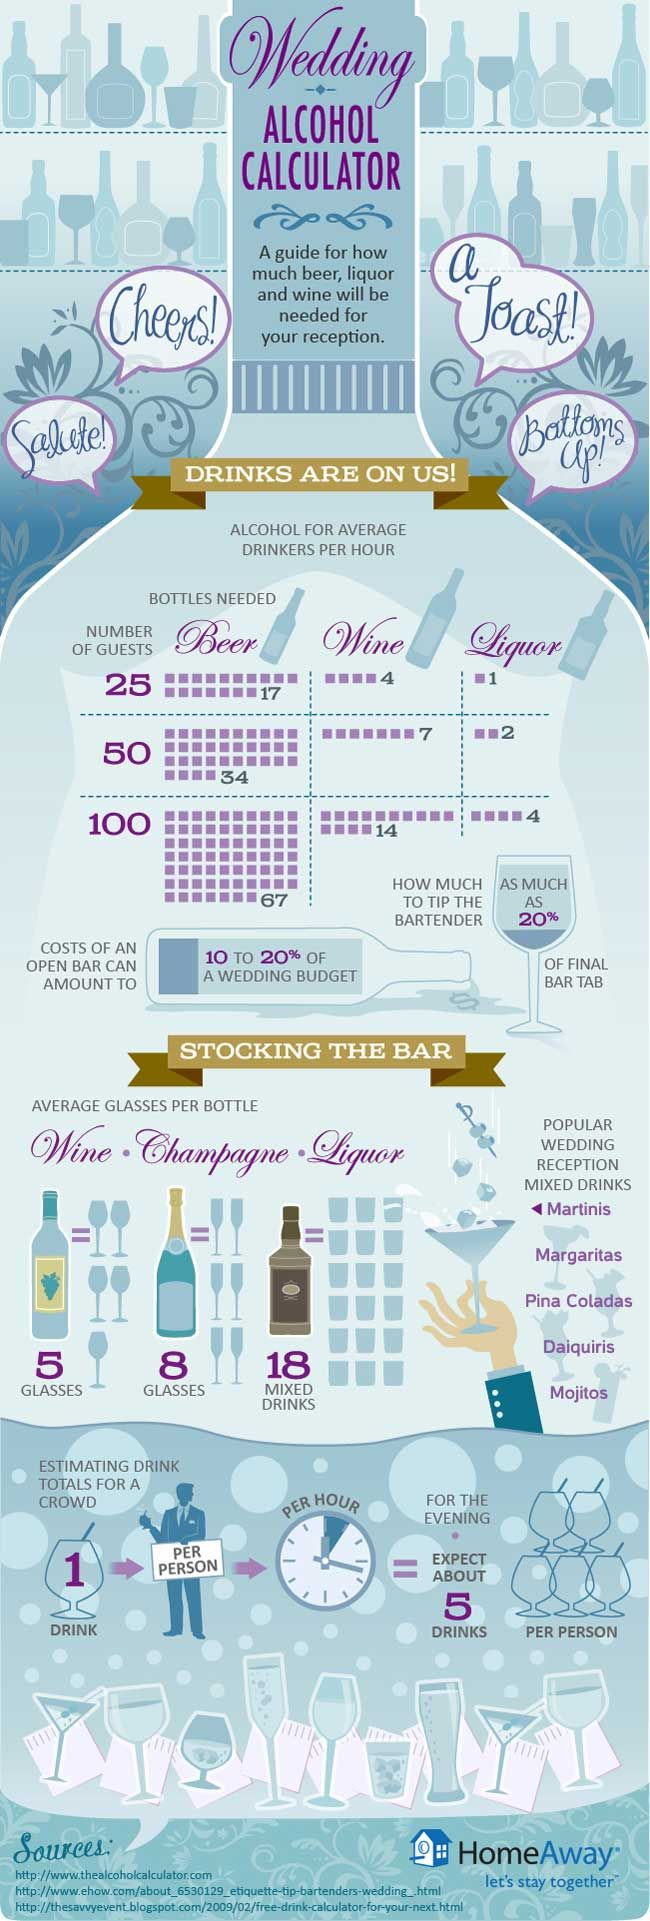 Alcohol guide @swtcheegrl2010